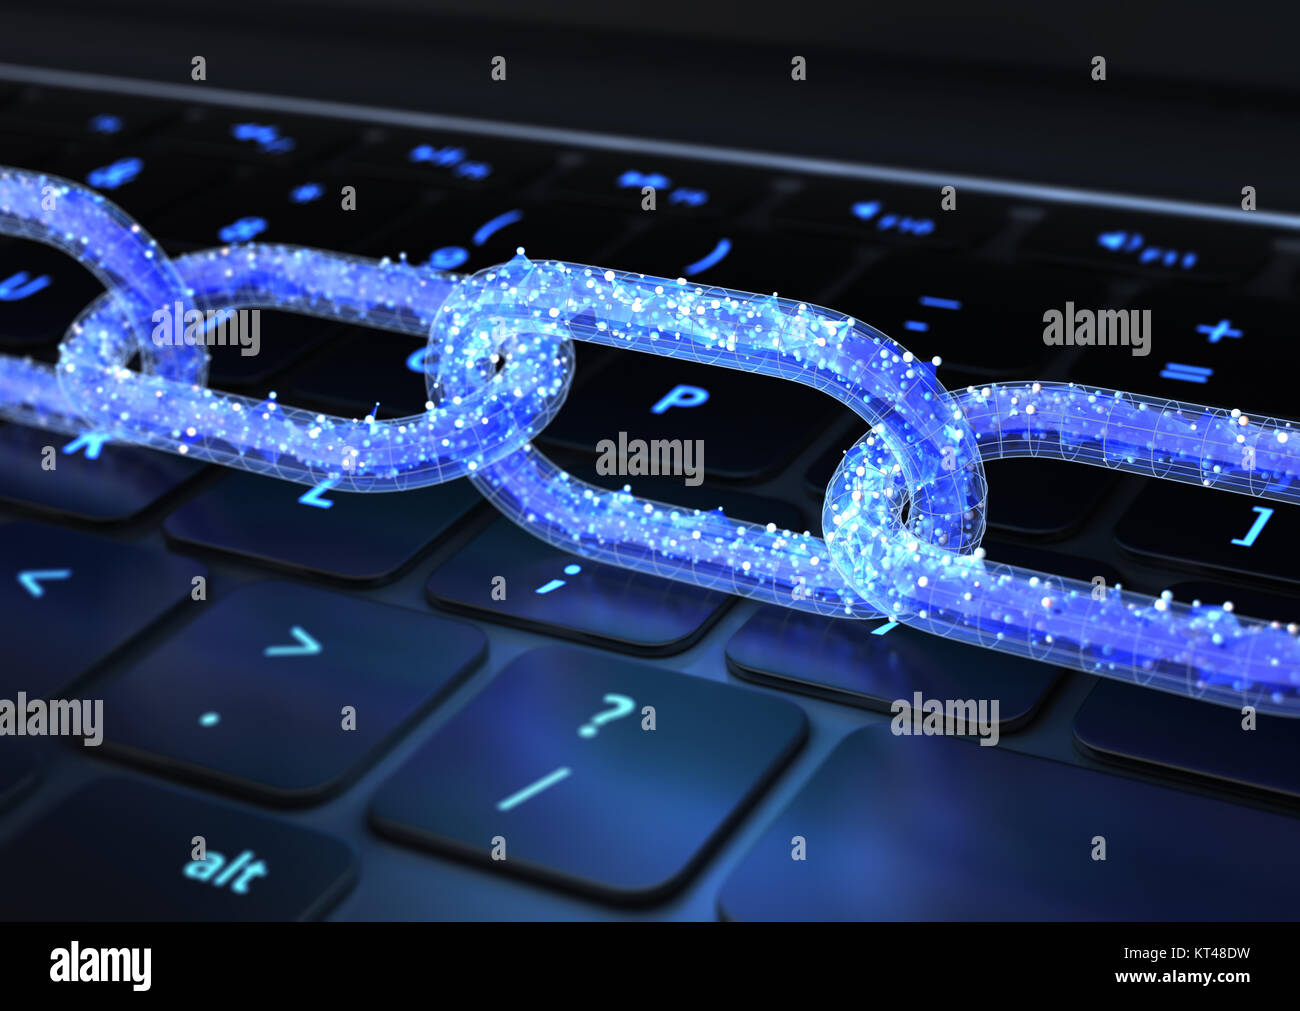 The chain with data on a keyboard. 3D illustration - Stock Image